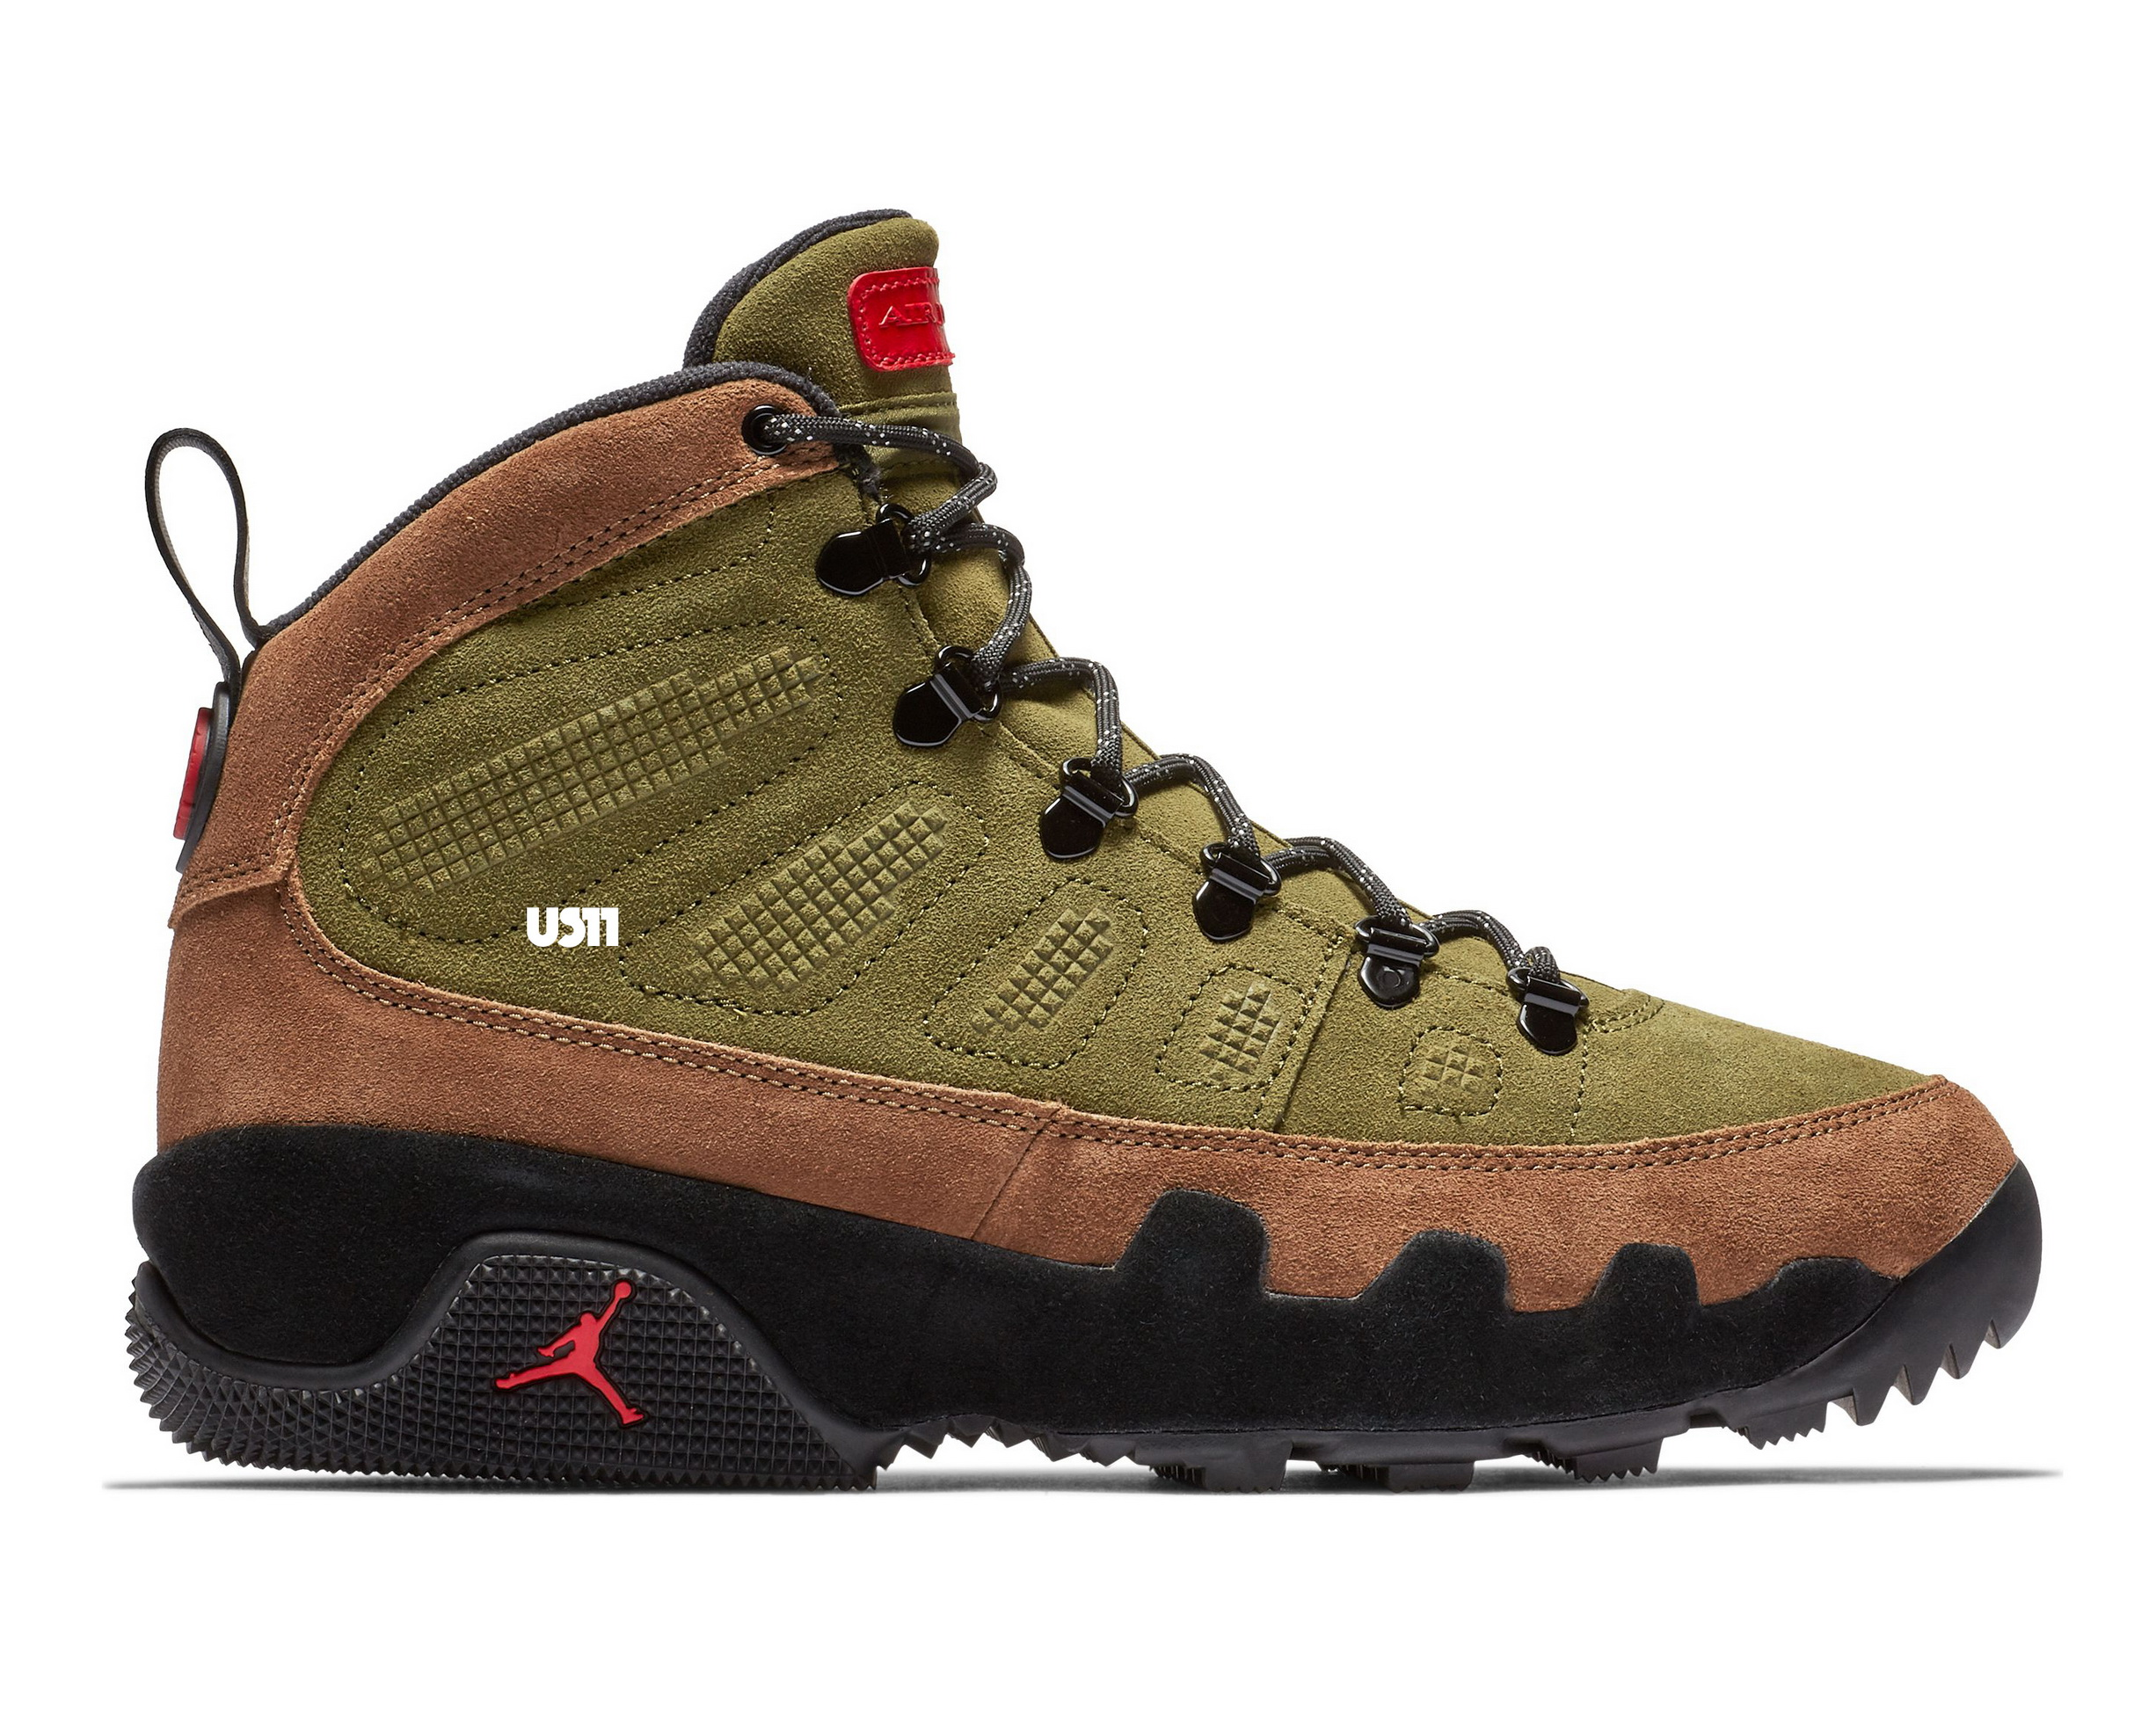 9d342f53dd3f0f Prep for Winter with the Air Jordan 9 Boot NRG  Olive  - WearTesters